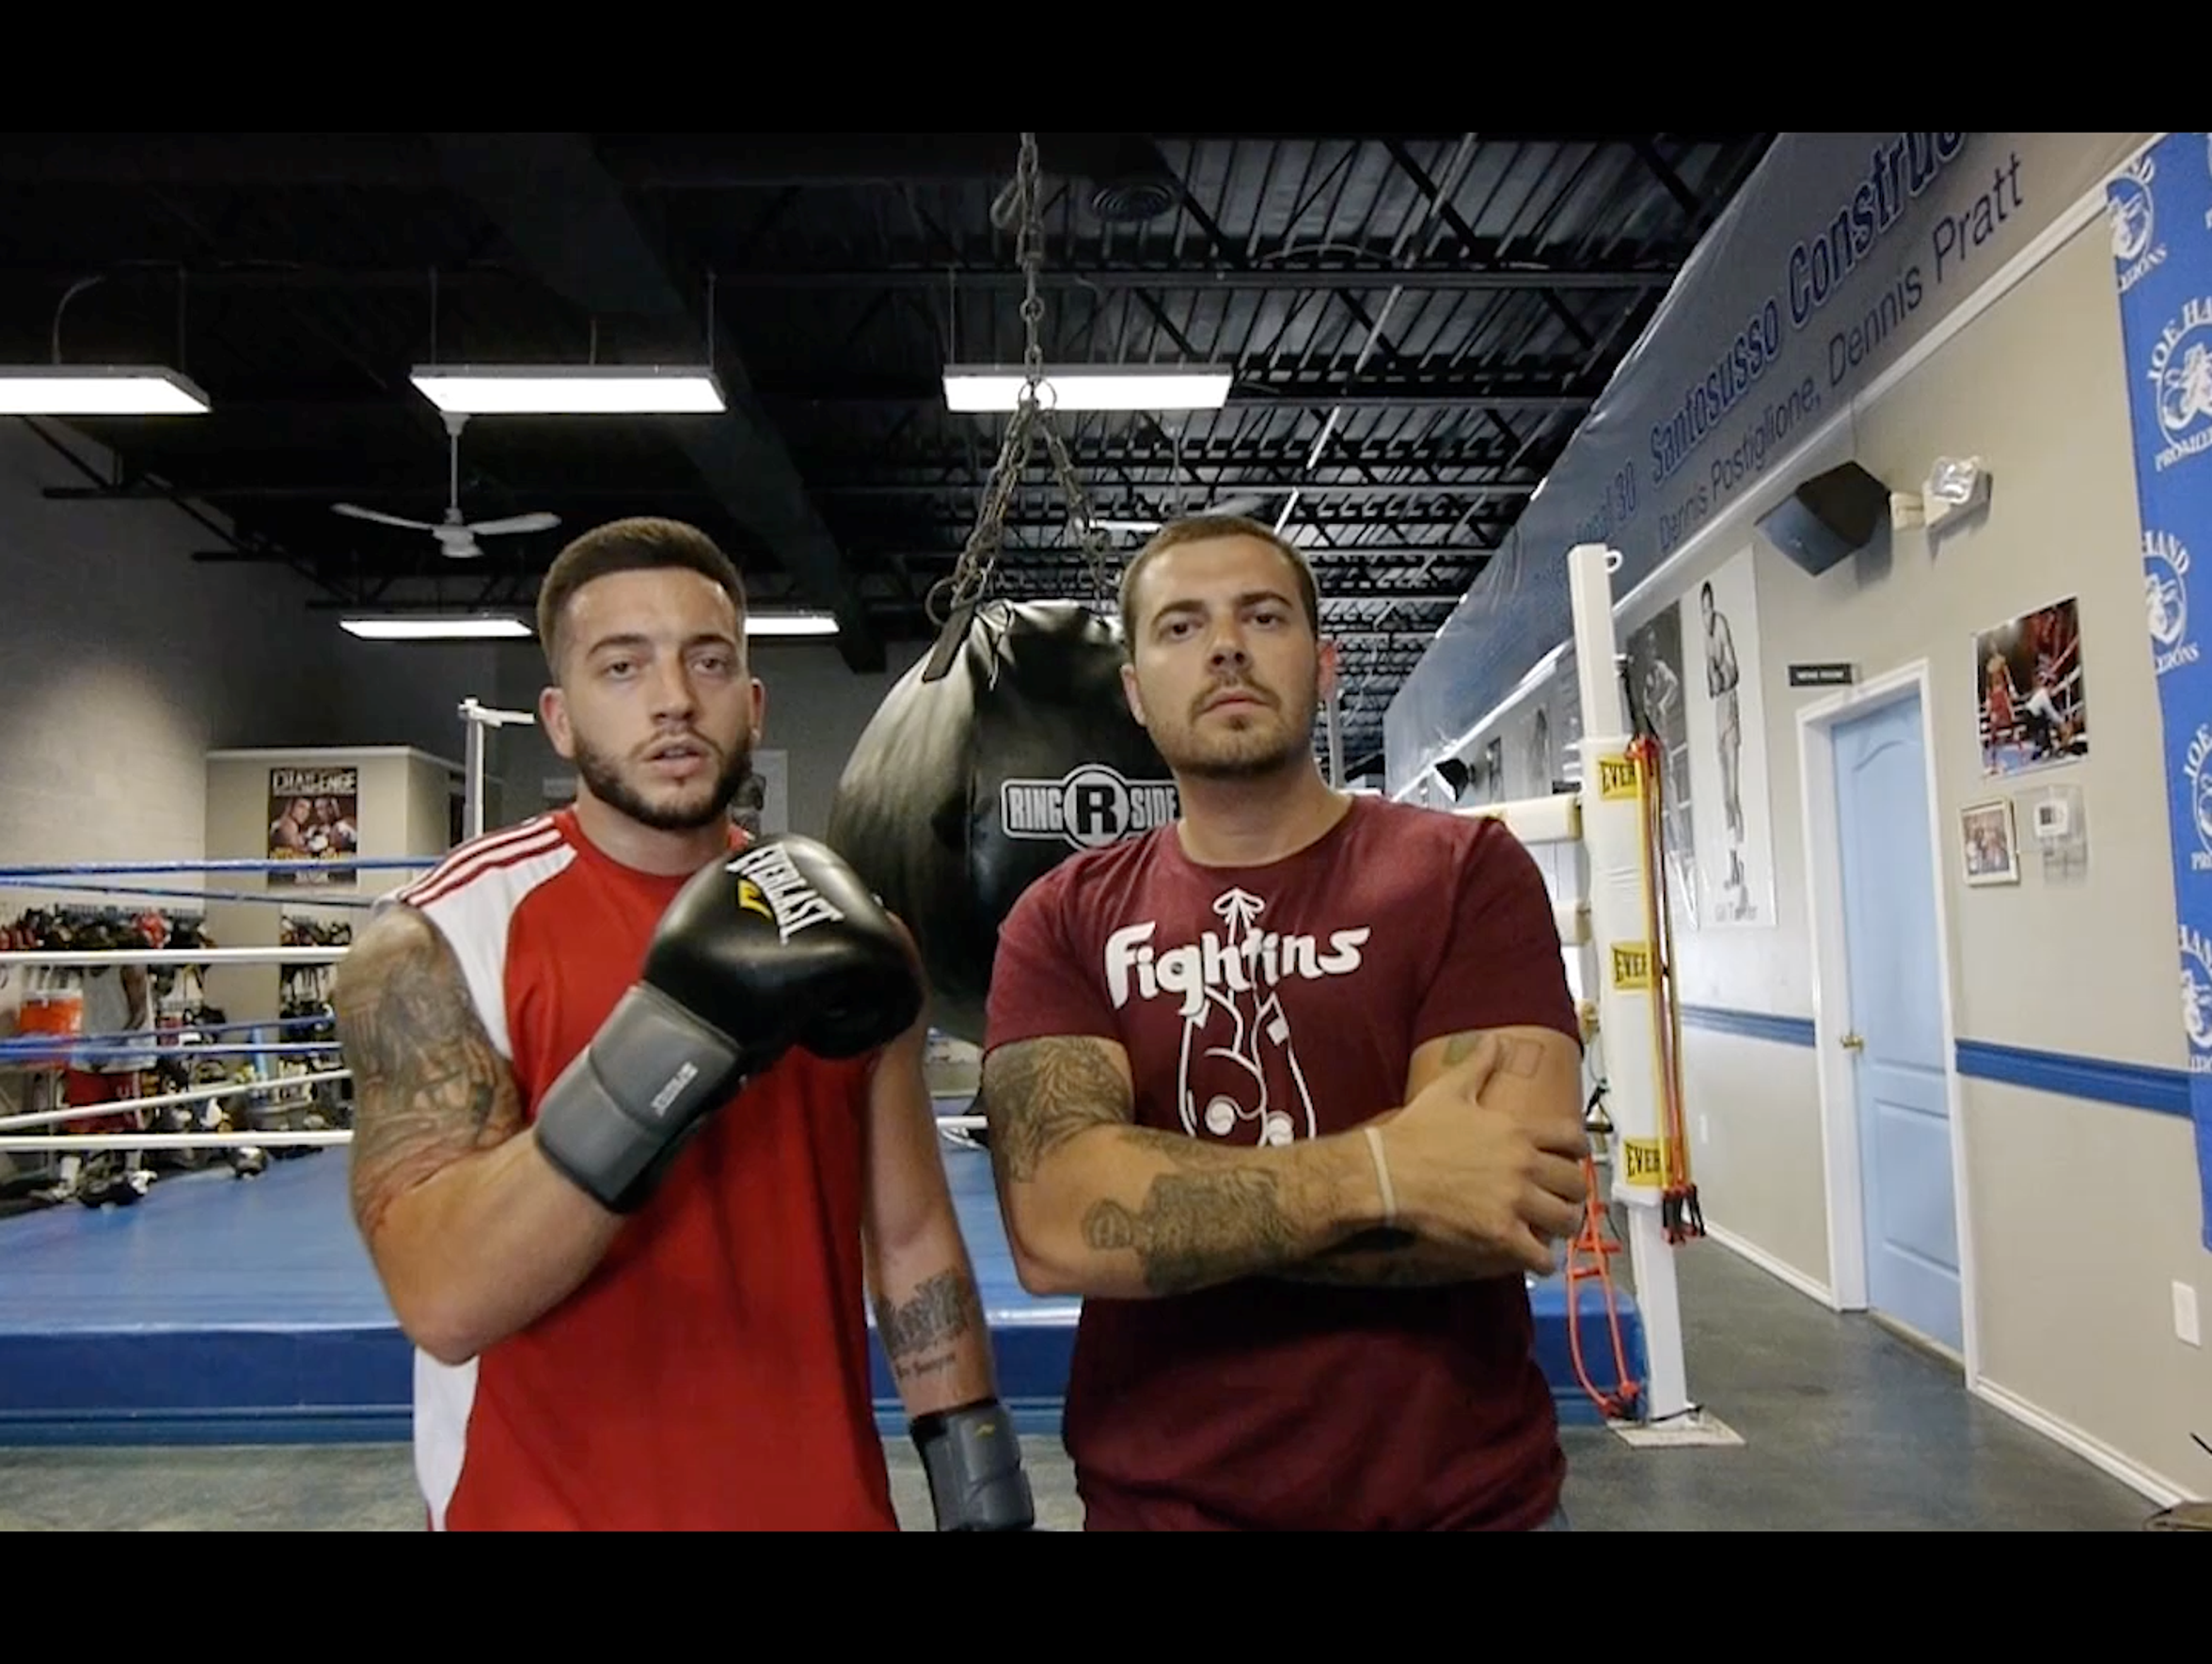 Augustus, aka Michael Marino (right) hangs out with his brother Steven Marino at the Joe Hand Boxing Gym in Philly in this scene from his video.    